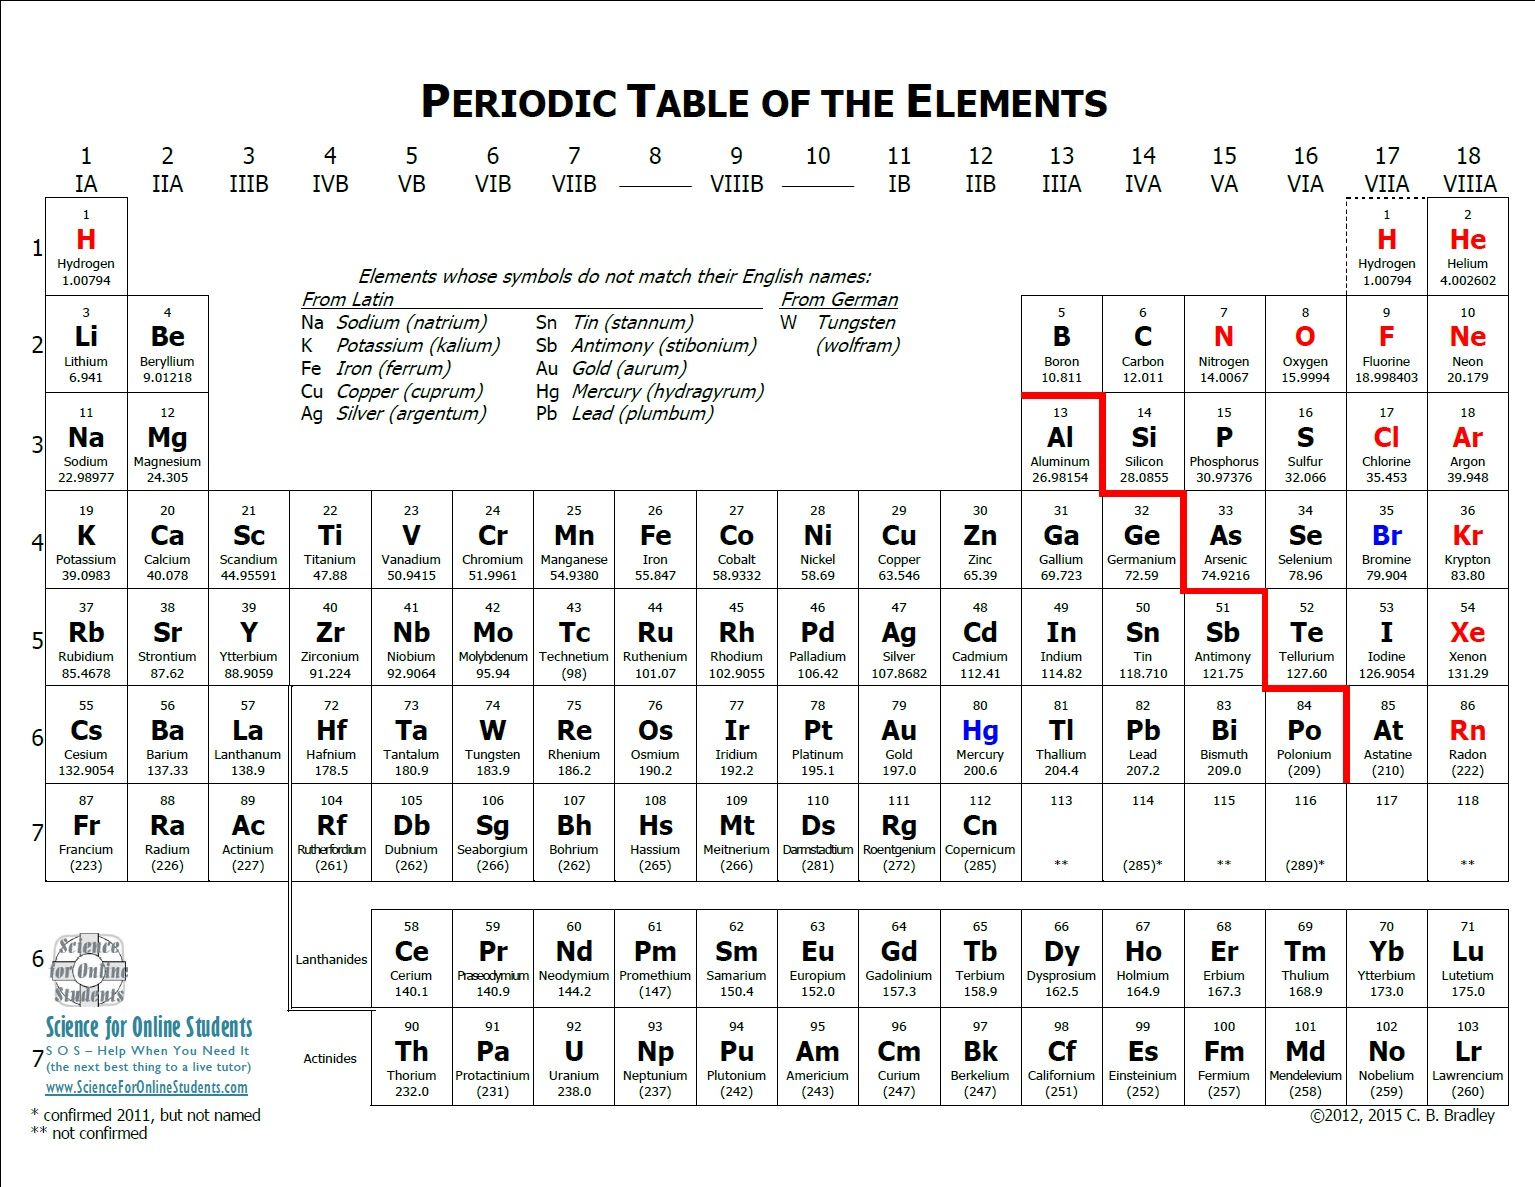 Periodic Table with notes explaining symbols that do not